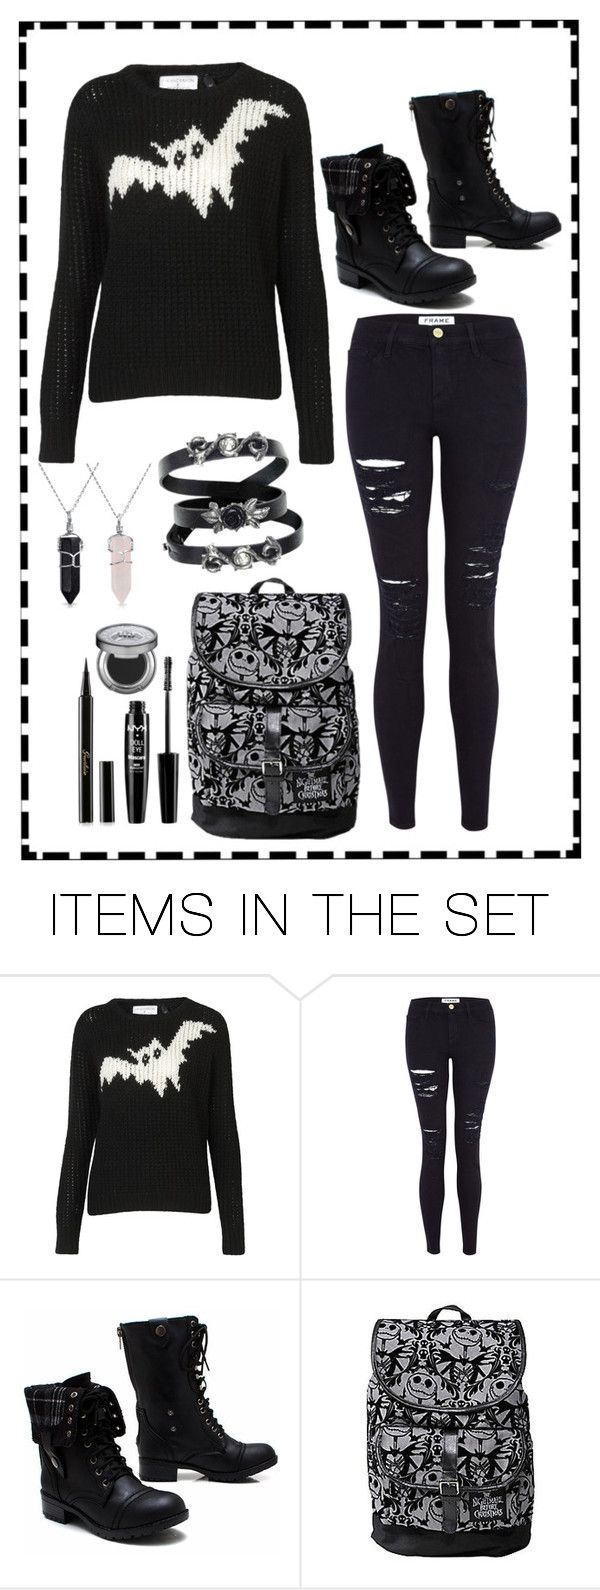 """""""There is beauty in darkness =)"""" by chuckygal-mp ❤ liked on Polyvore featuring art"""